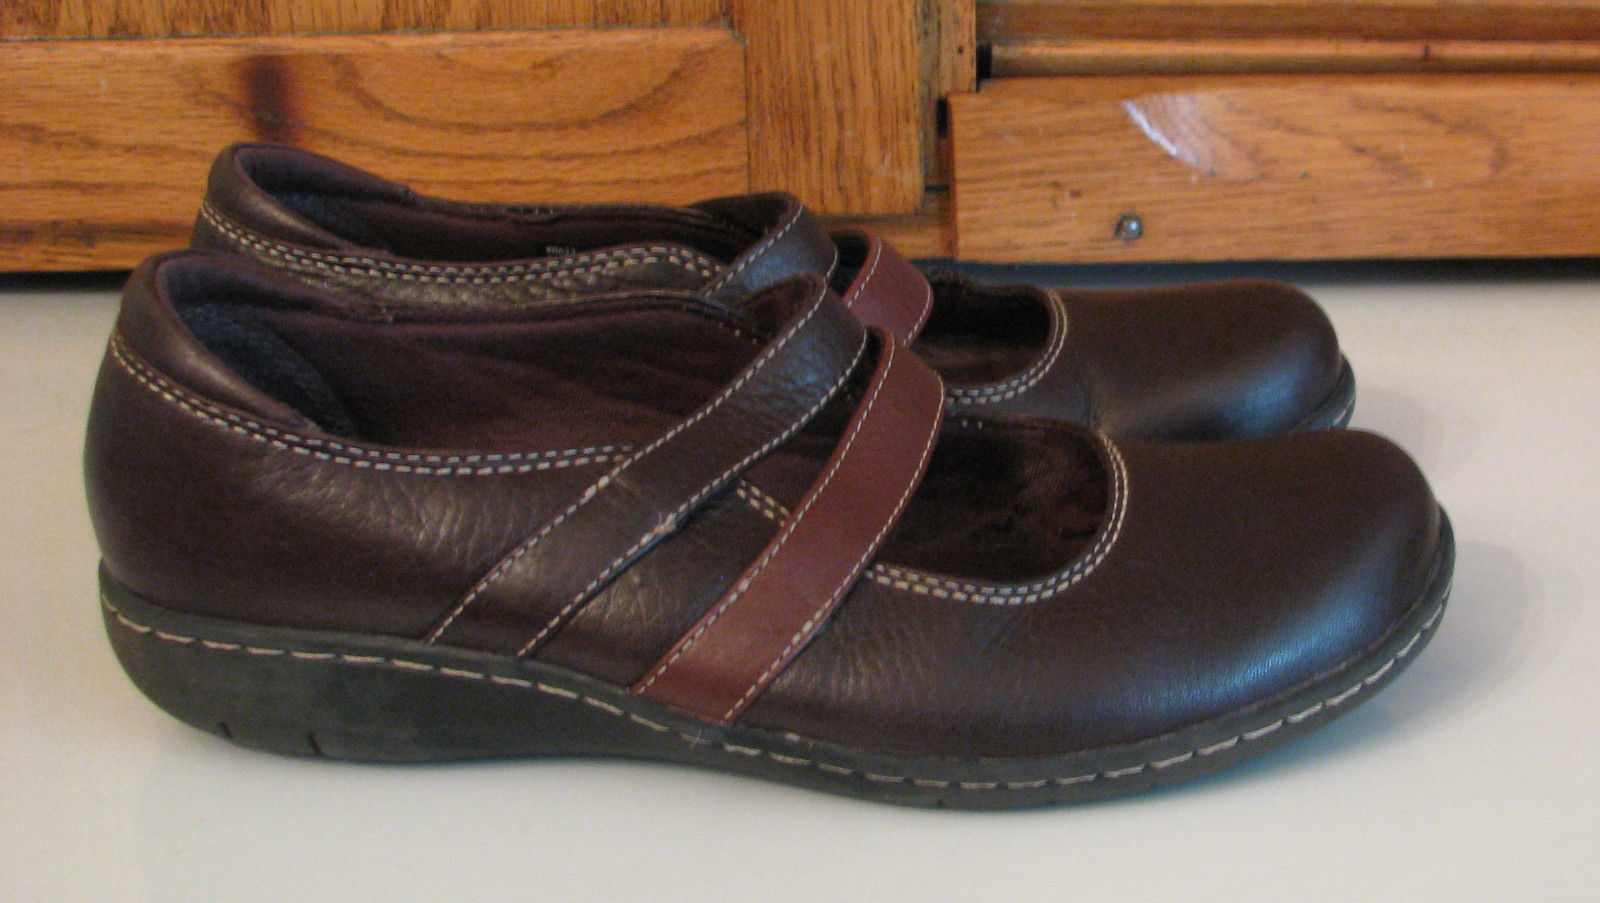 Clarks Bendable Brown Leather SHOES Woman's 8 M Cute Style